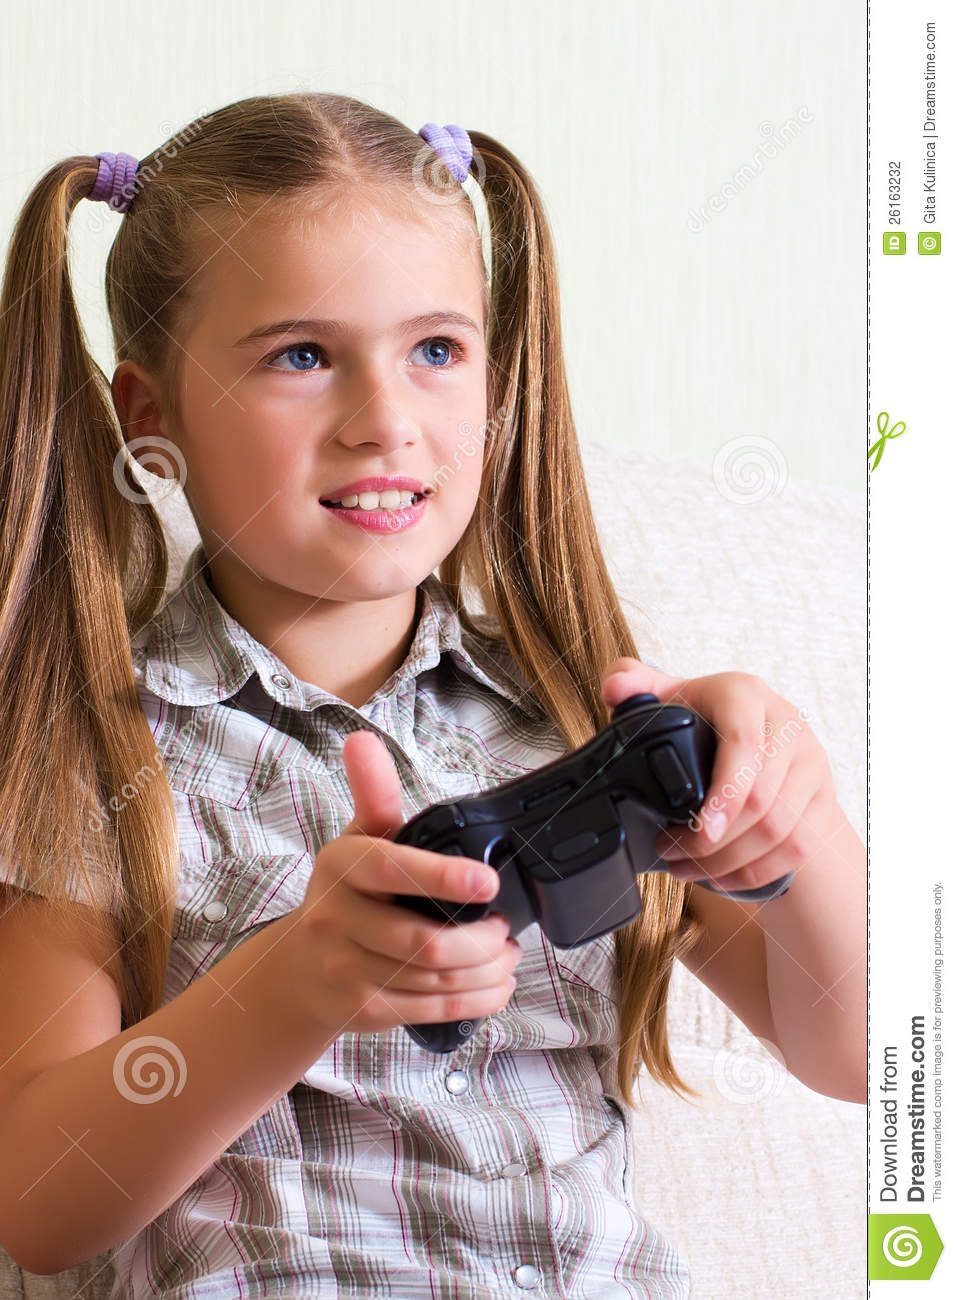 Girl Playing Video Game. Stock Photography - Image: 26163232